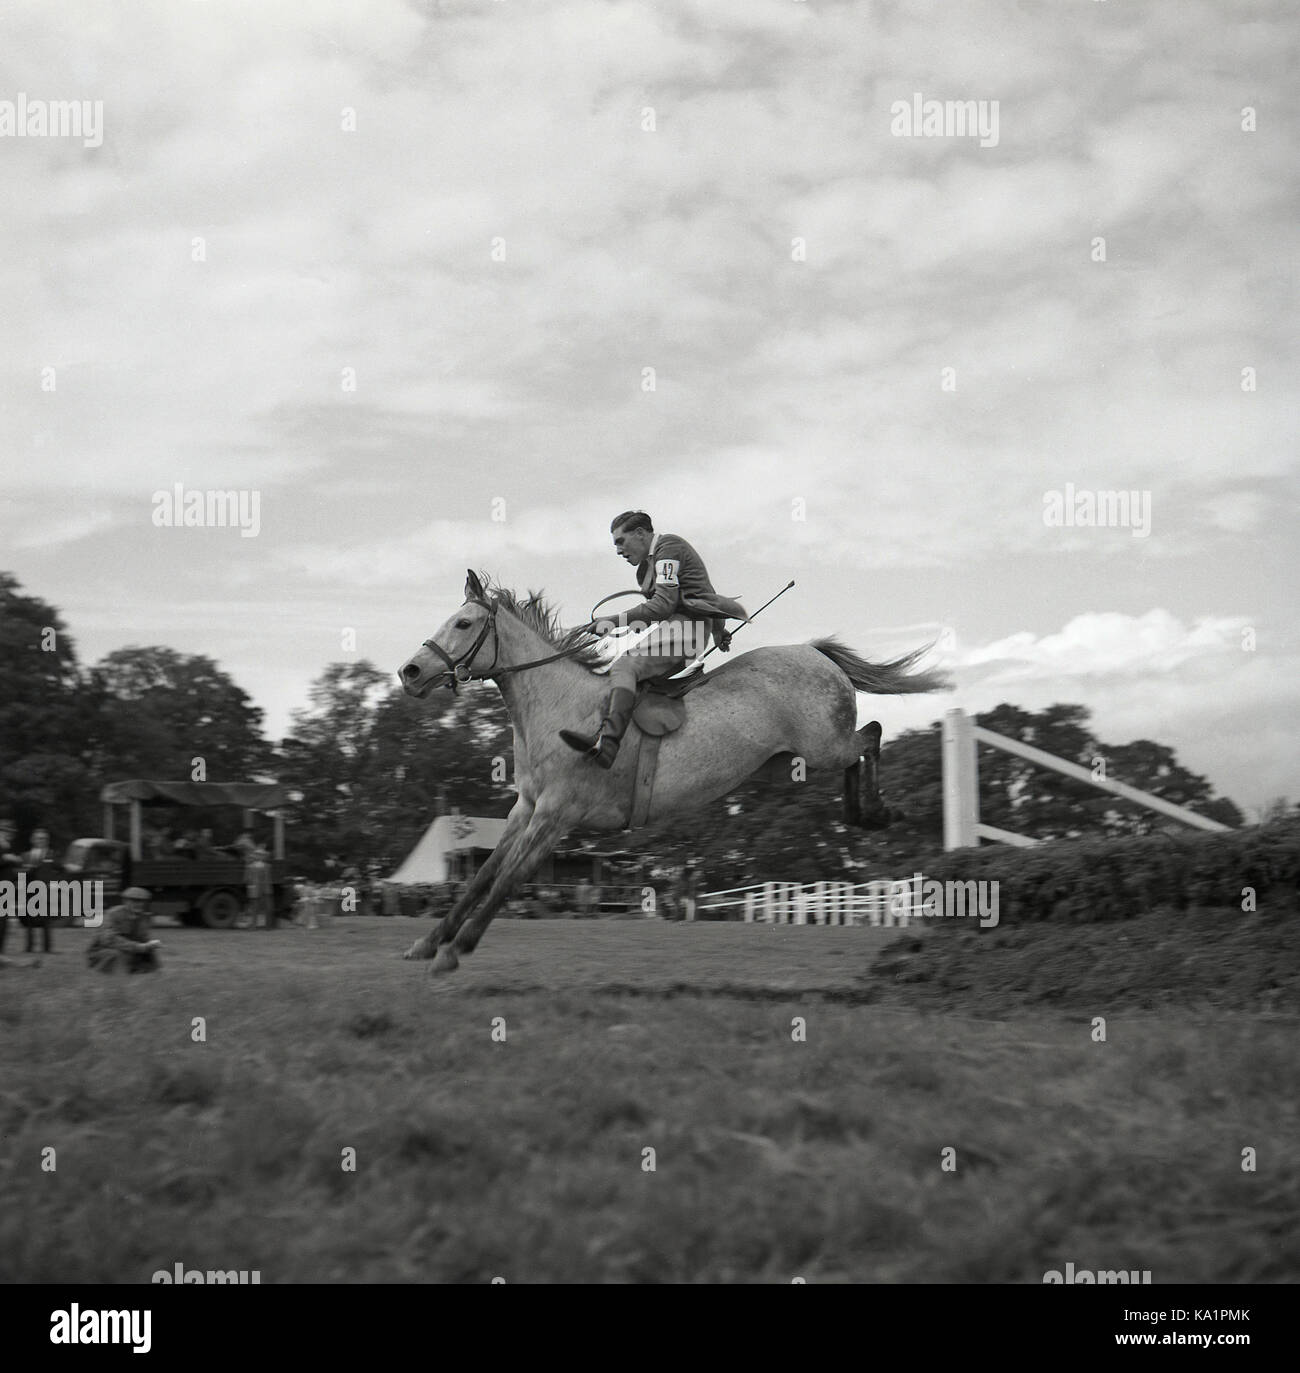 195s, historical, outdoor eventing competition, picture shows a male rider skilfully jumping over a fence on his - Stock Image